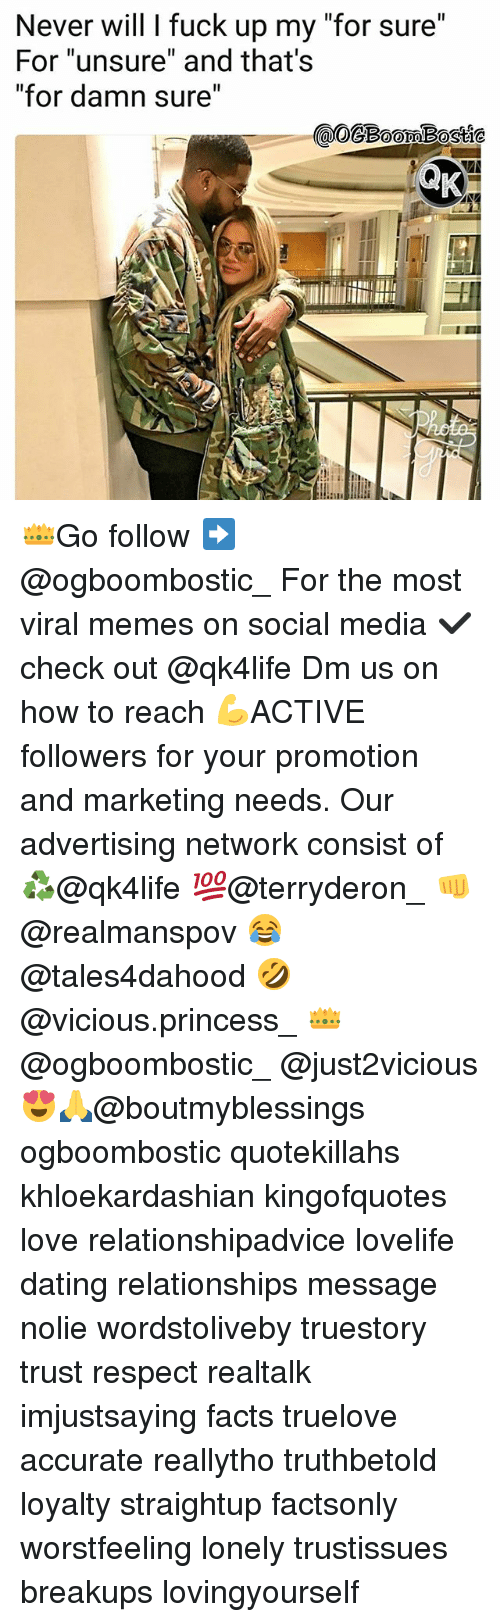 """Dating, Facts, and Love: Never will I fuck up my """"for sure""""  For """"unsure"""" and that's  for damn sure"""" 👑Go follow ➡@ogboombostic_ For the most viral memes on social media ✔check out @qk4life Dm us on how to reach 💪ACTIVE followers for your promotion and marketing needs. Our advertising network consist of ♻@qk4life 💯@terryderon_ 👊@realmanspov 😂@tales4dahood 🤣@vicious.princess_ 👑@ogboombostic_ @just2vicious😍🙏@boutmyblessings ogboombostic quotekillahs khloekardashian kingofquotes love relationshipadvice lovelife dating relationships message nolie wordstoliveby truestory trust respect realtalk imjustsaying facts truelove accurate reallytho truthbetold loyalty straightup factsonly worstfeeling lonely trustissues breakups lovingyourself"""